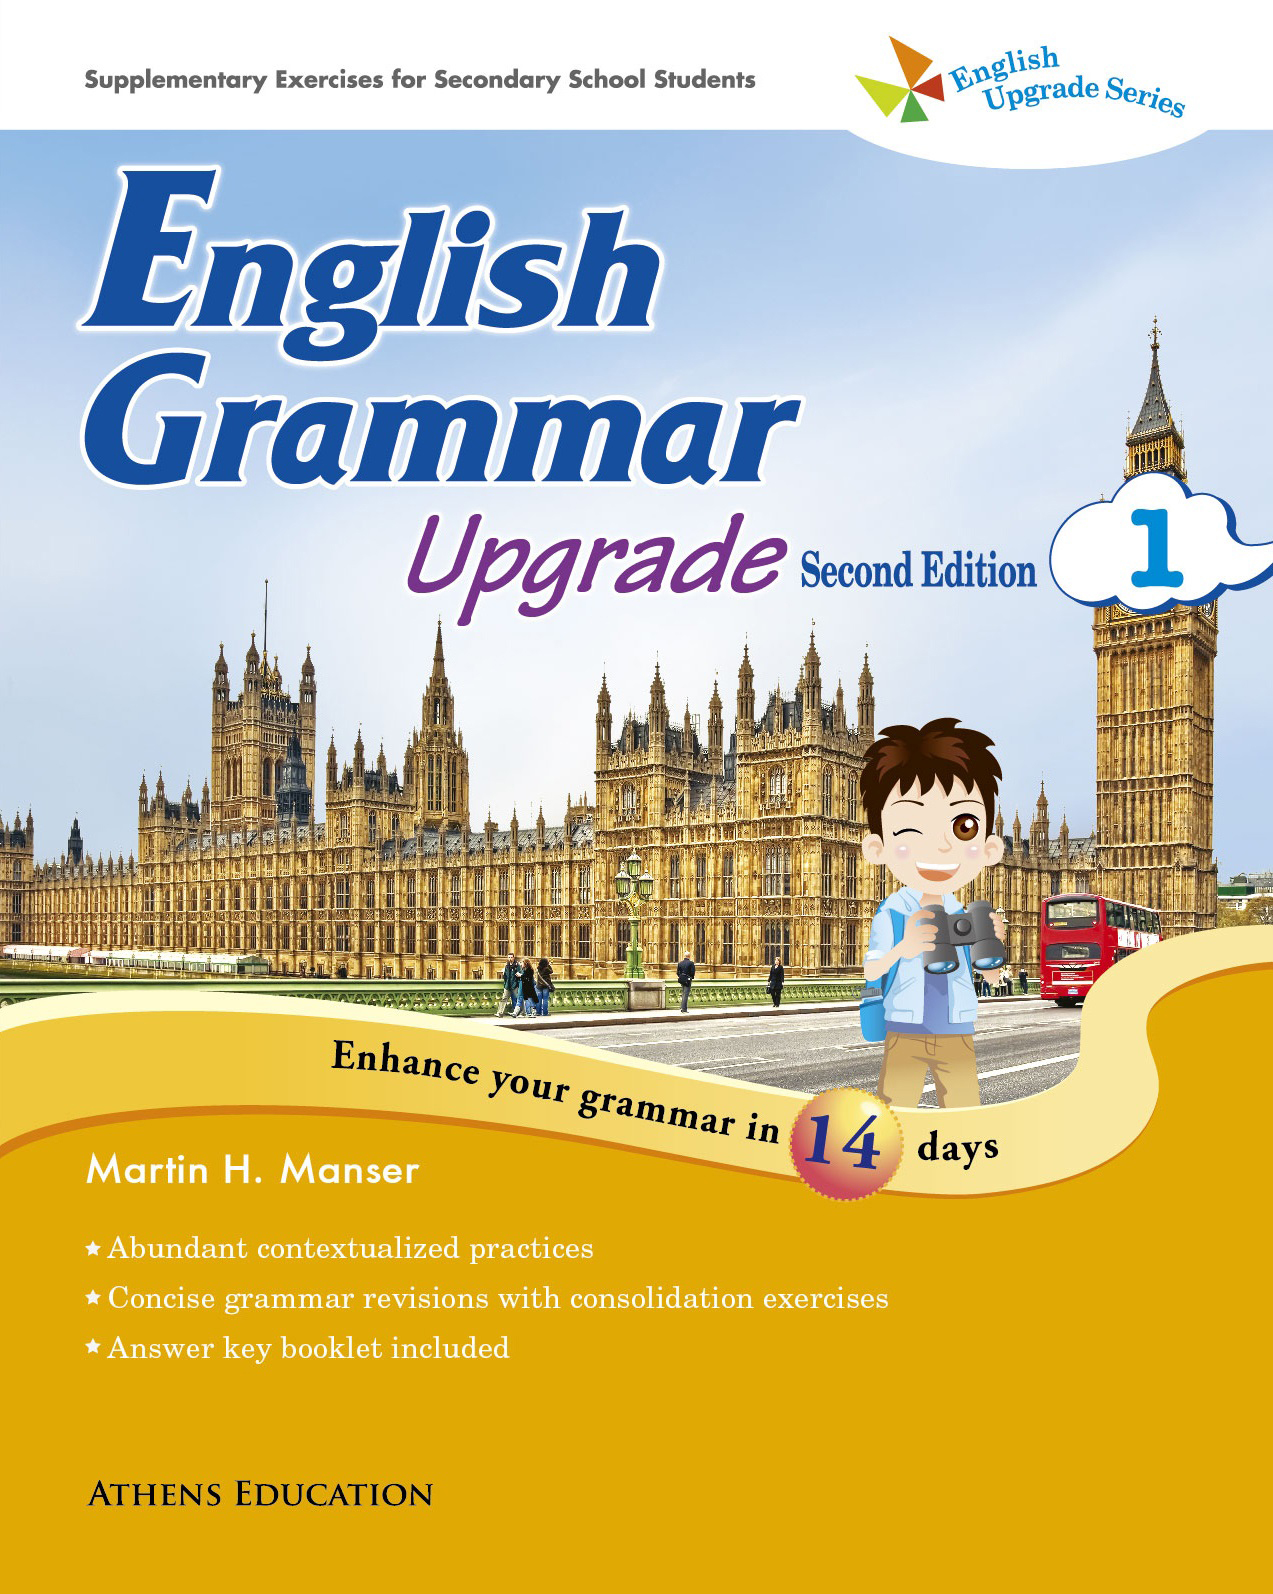 learning english is very important essay Language is very important without it we would  essays related to why language is important 1  to force immigrants to learn english as fast as possible so .